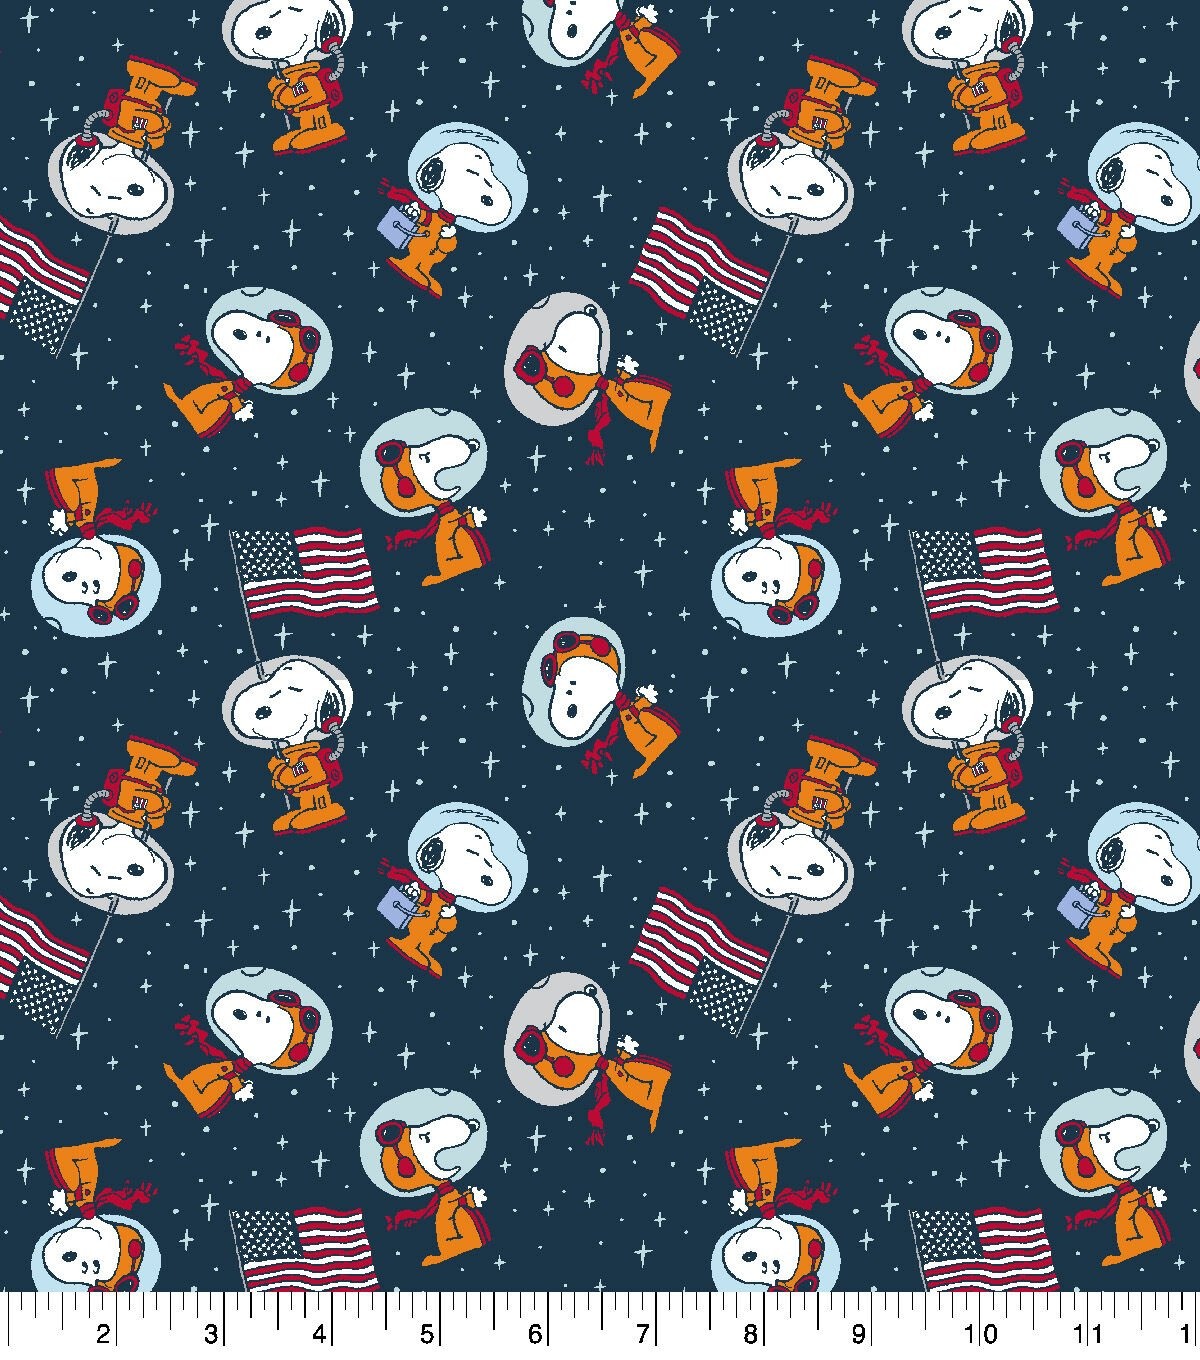 Peanuts Cotton Fabric-Snoopy Space.